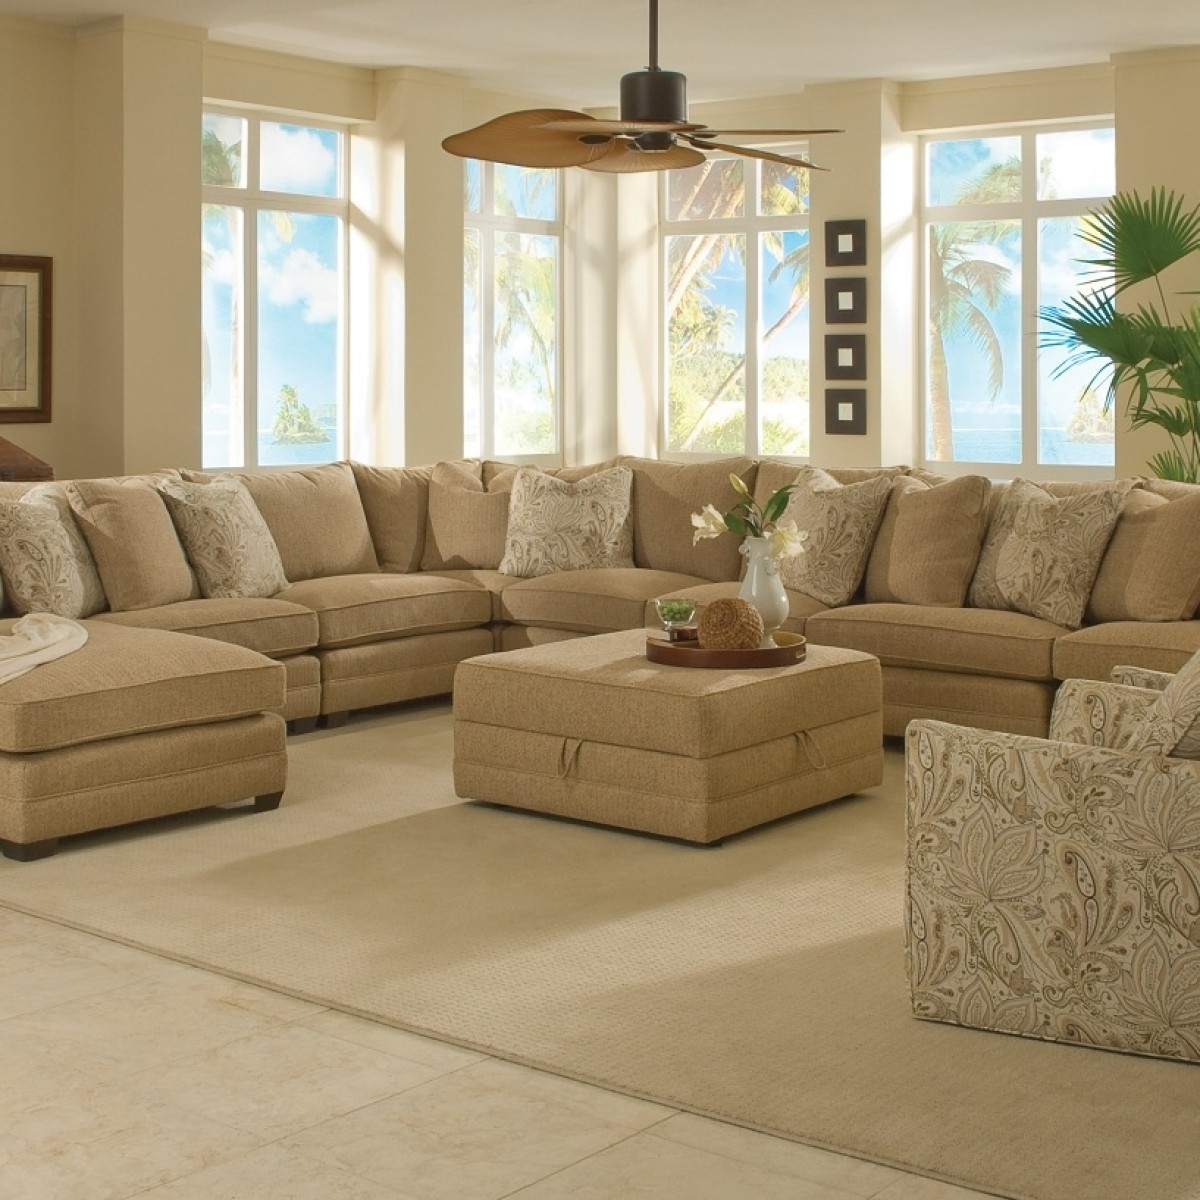 Preferred Sofa Sectionals With Chaise With Regard To Ethan Allen Sectional Sofas Double Chaise Sectional U Shaped (View 6 of 15)